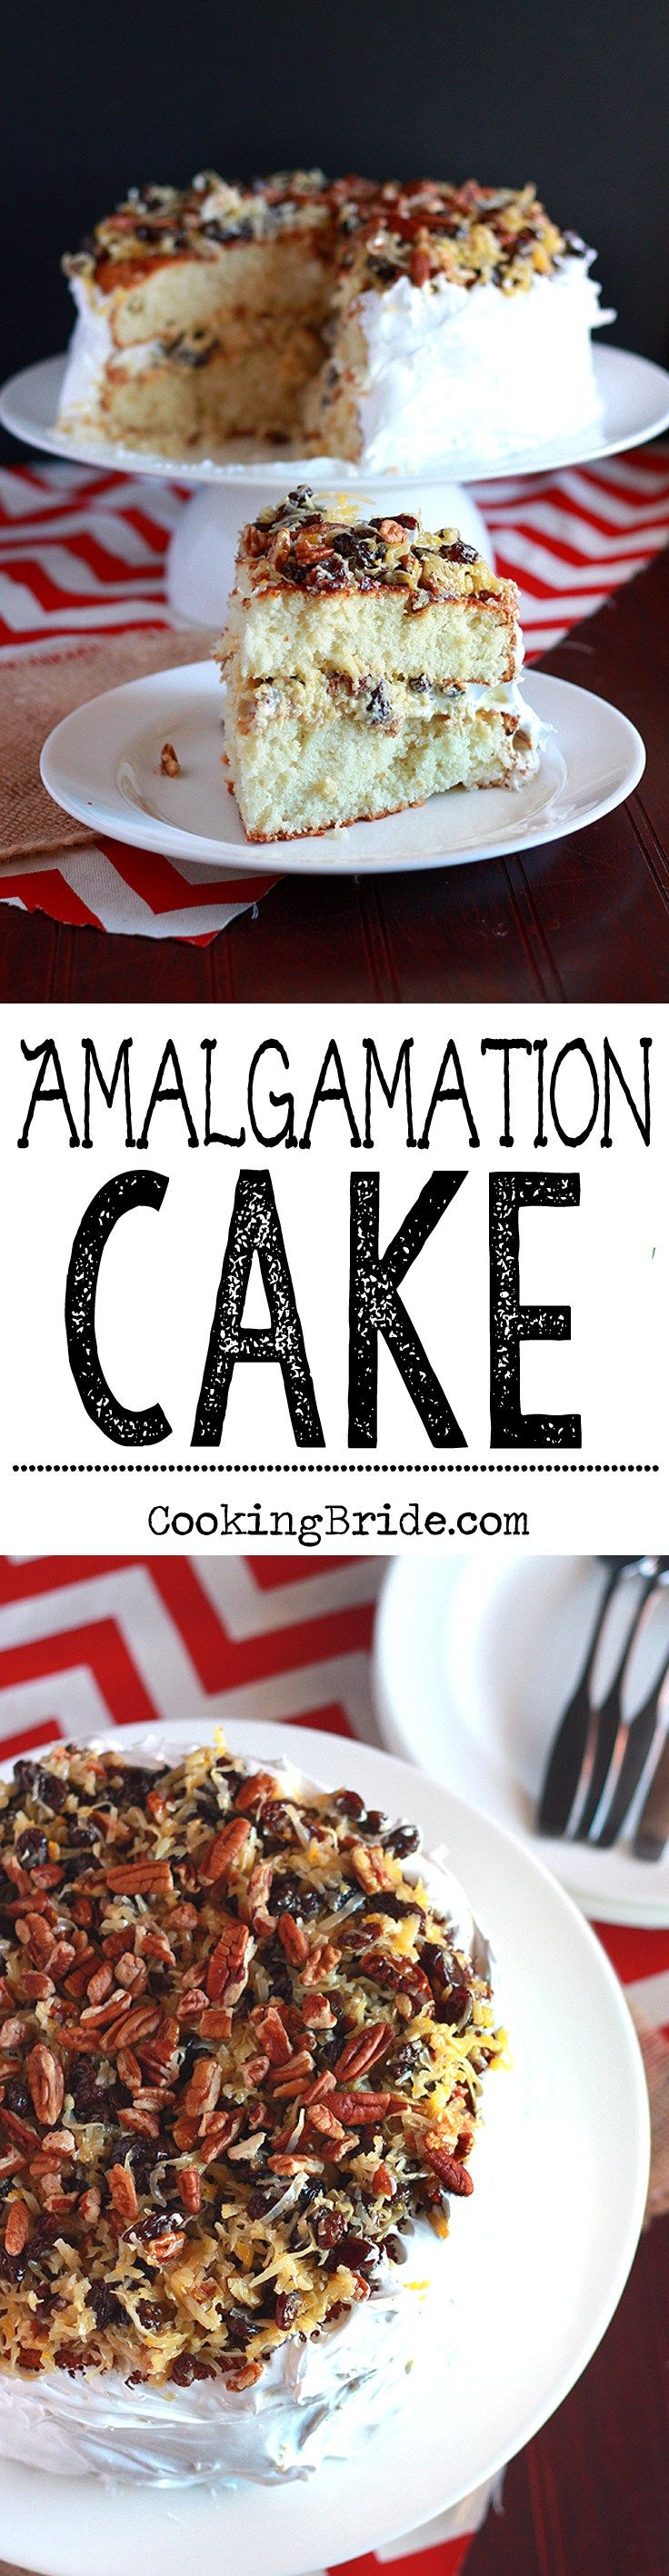 A forgotten Southern classic Amalgamation cake bines raisins coconut eggs and a